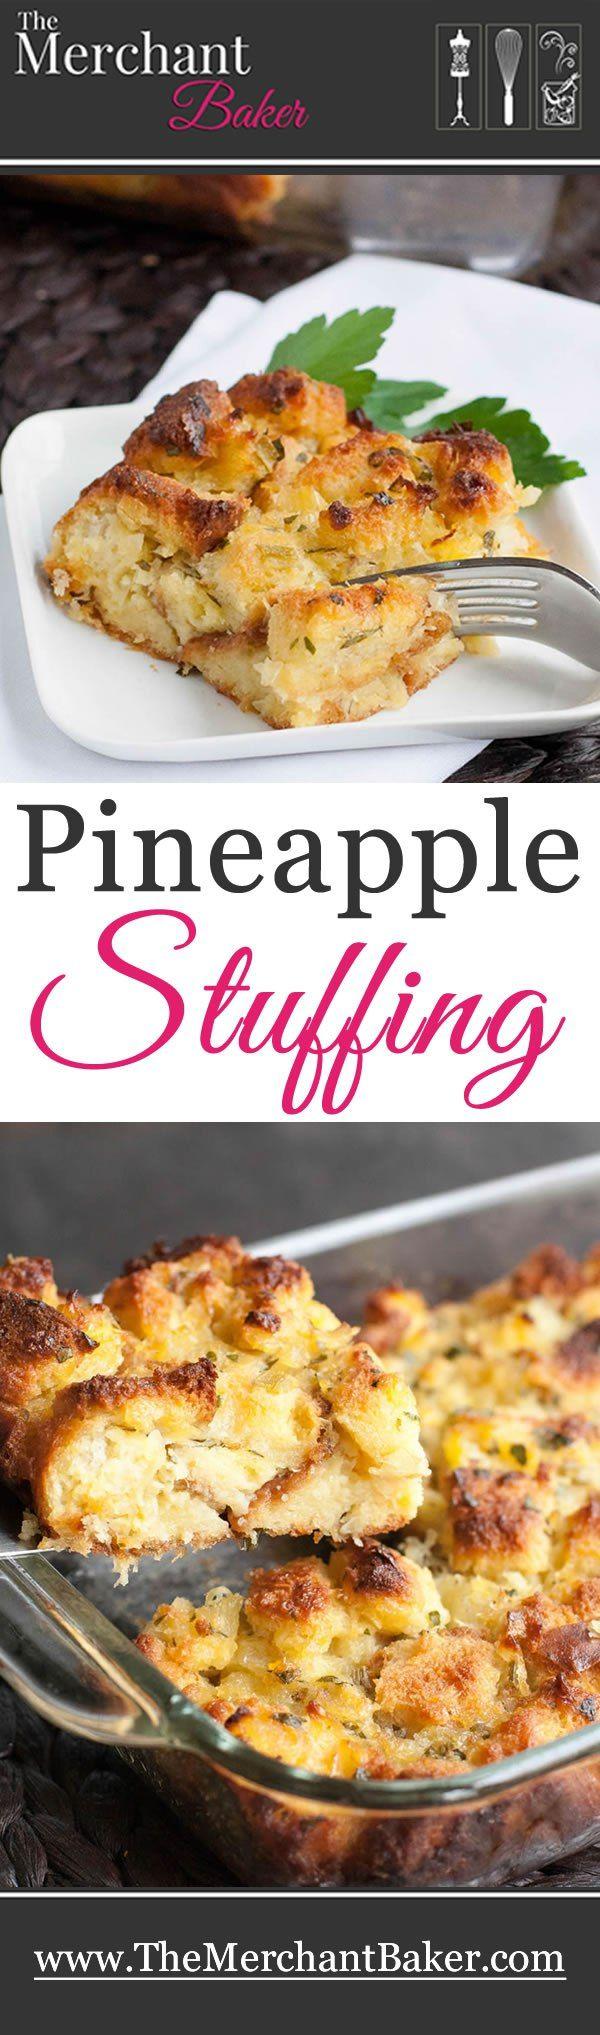 Pineapple Stuffing. A sweet and savory side dish that's a twist on classic stuffing. It's a perfect served with ham and pork dishes.